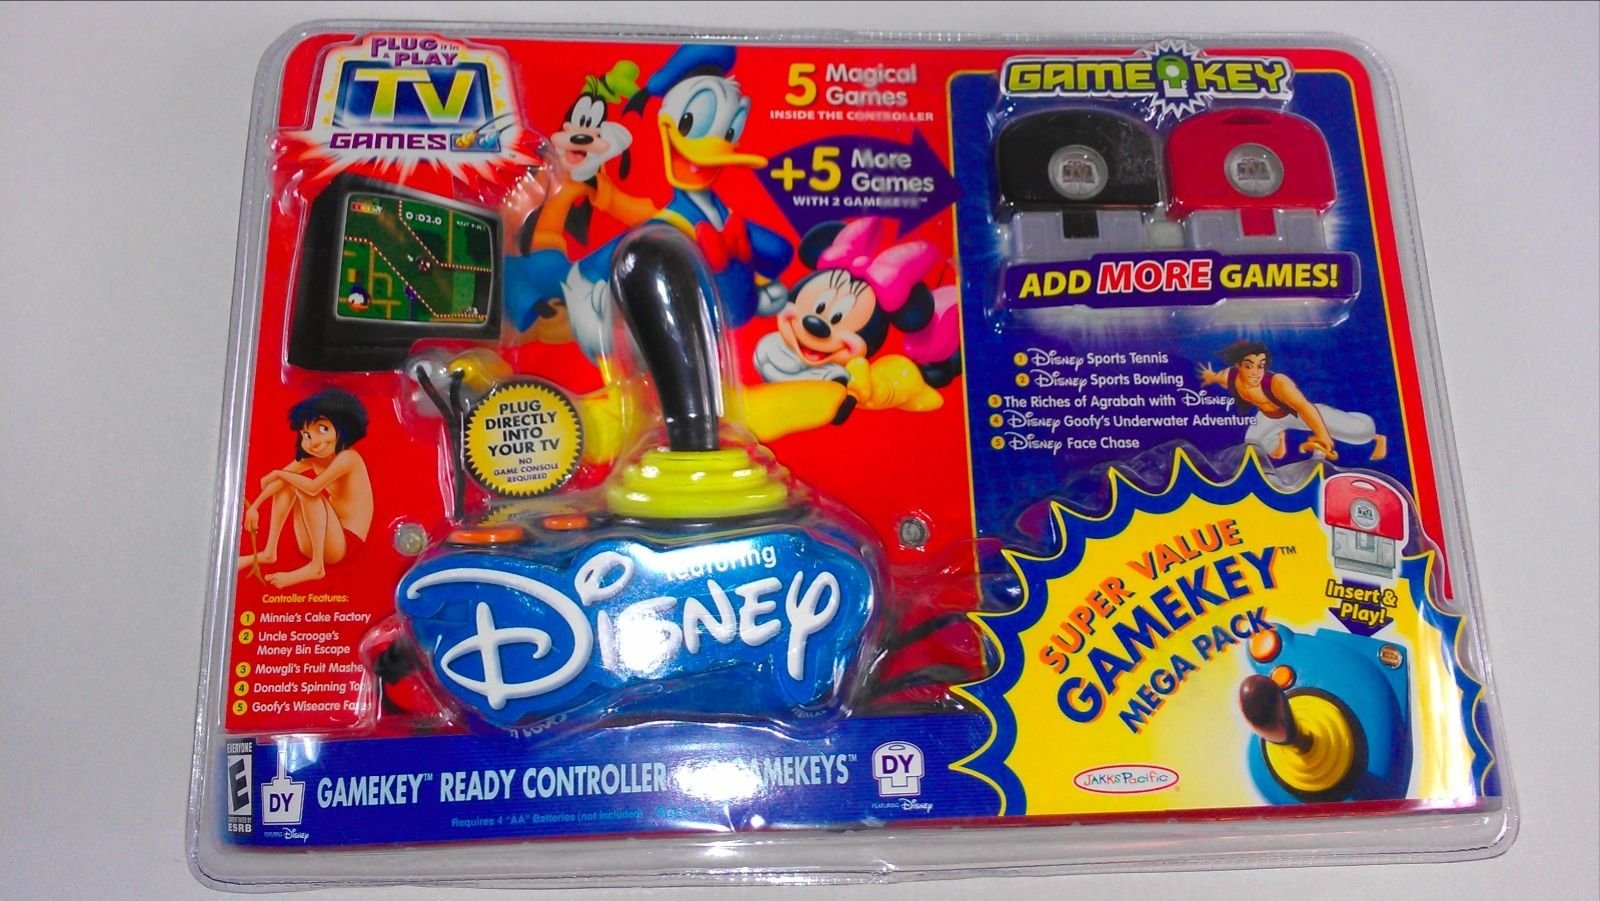 Disney Plug it in & Play TV Super Value Mega Pack with 2 extra Game Keys